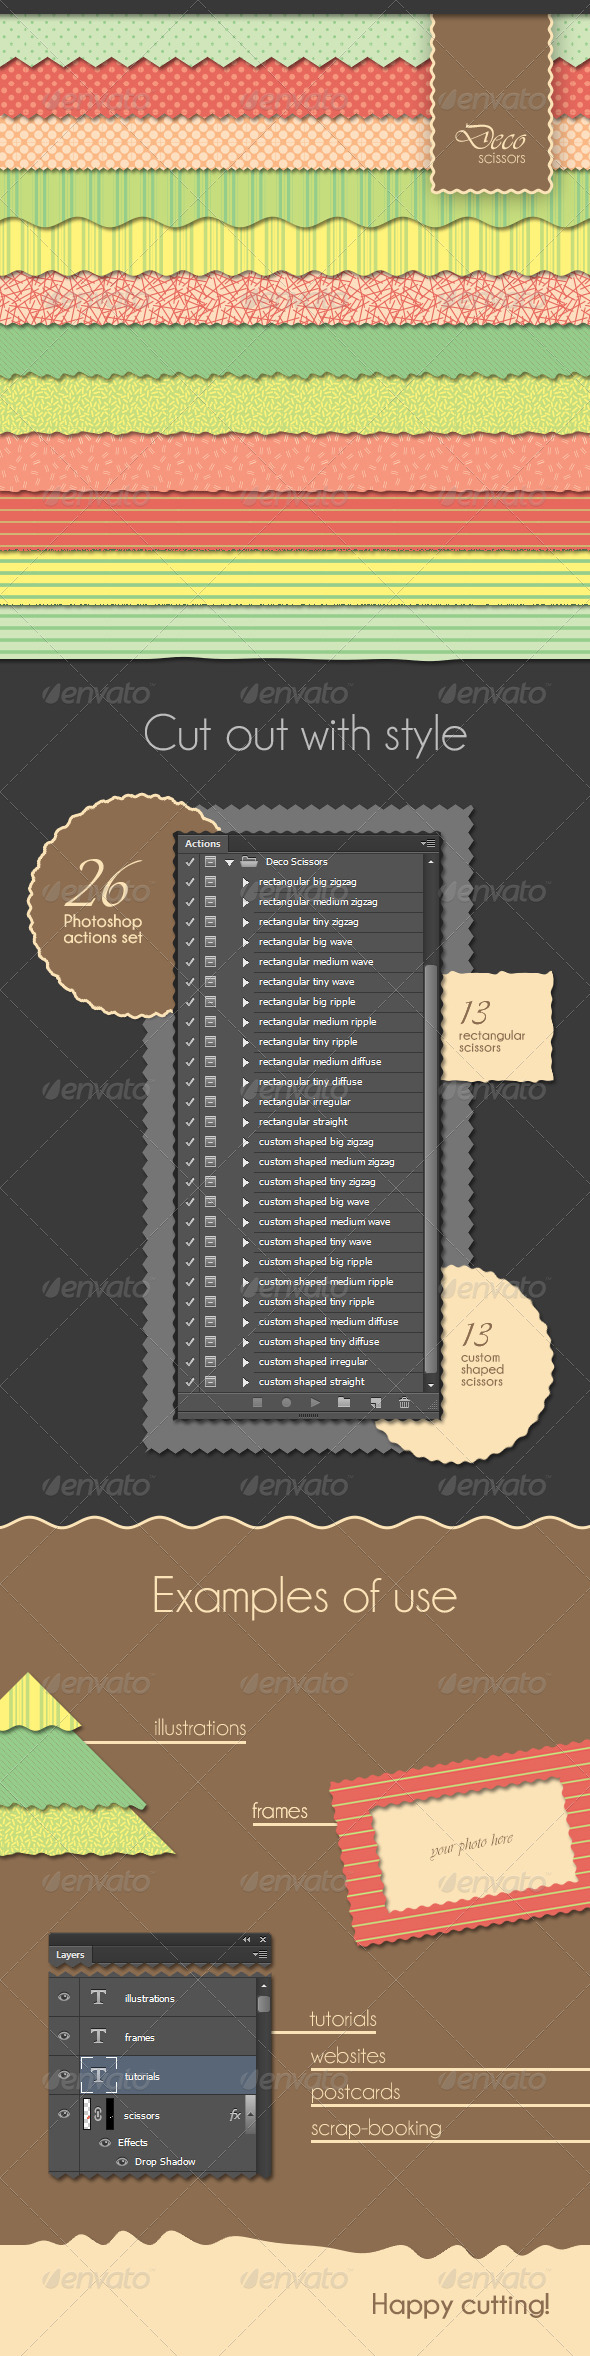 GraphicRiver 26 Deco Scissors Actions Set 3458681